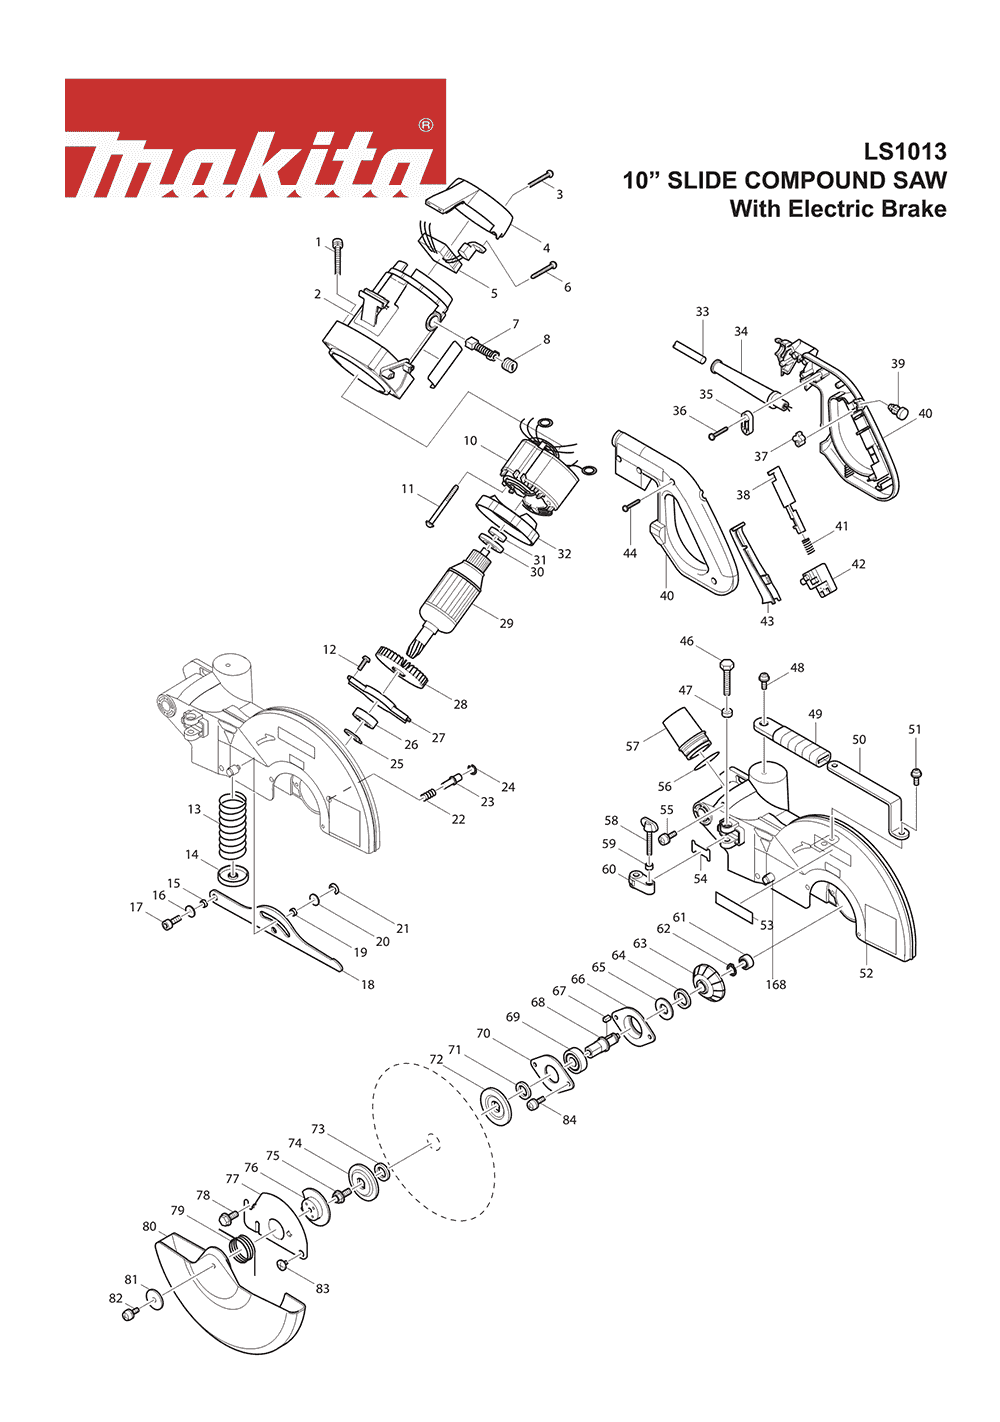 Makita Miter Saw Switch Wiring Diagram Trusted Diagrams Craftsman 10 Table Basic U2022 Parts